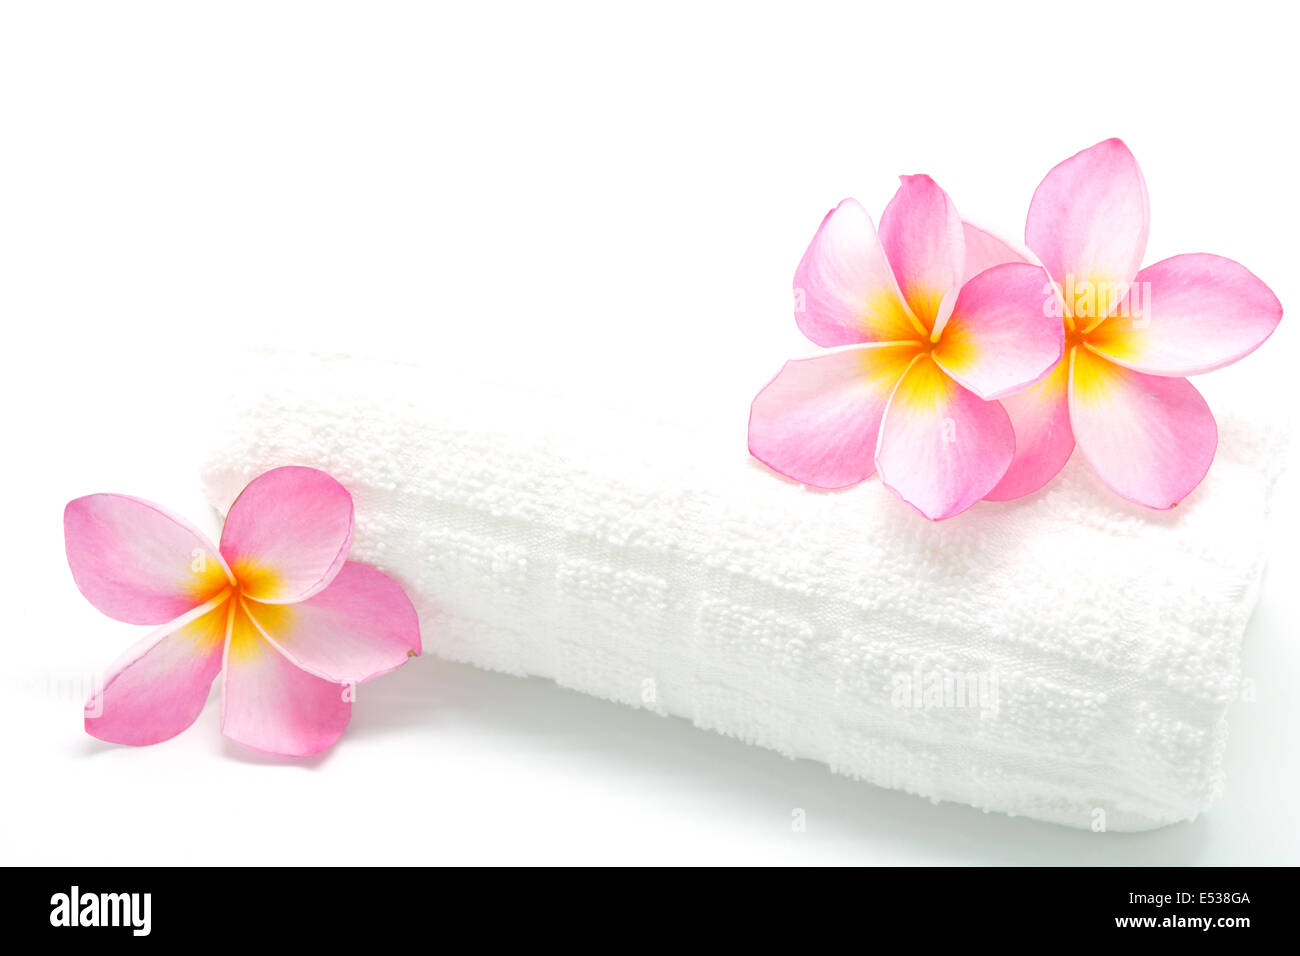 Pink plumeria flower with a white towel in spa condition stock photo pink plumeria flower with a white towel in spa condition mightylinksfo Choice Image